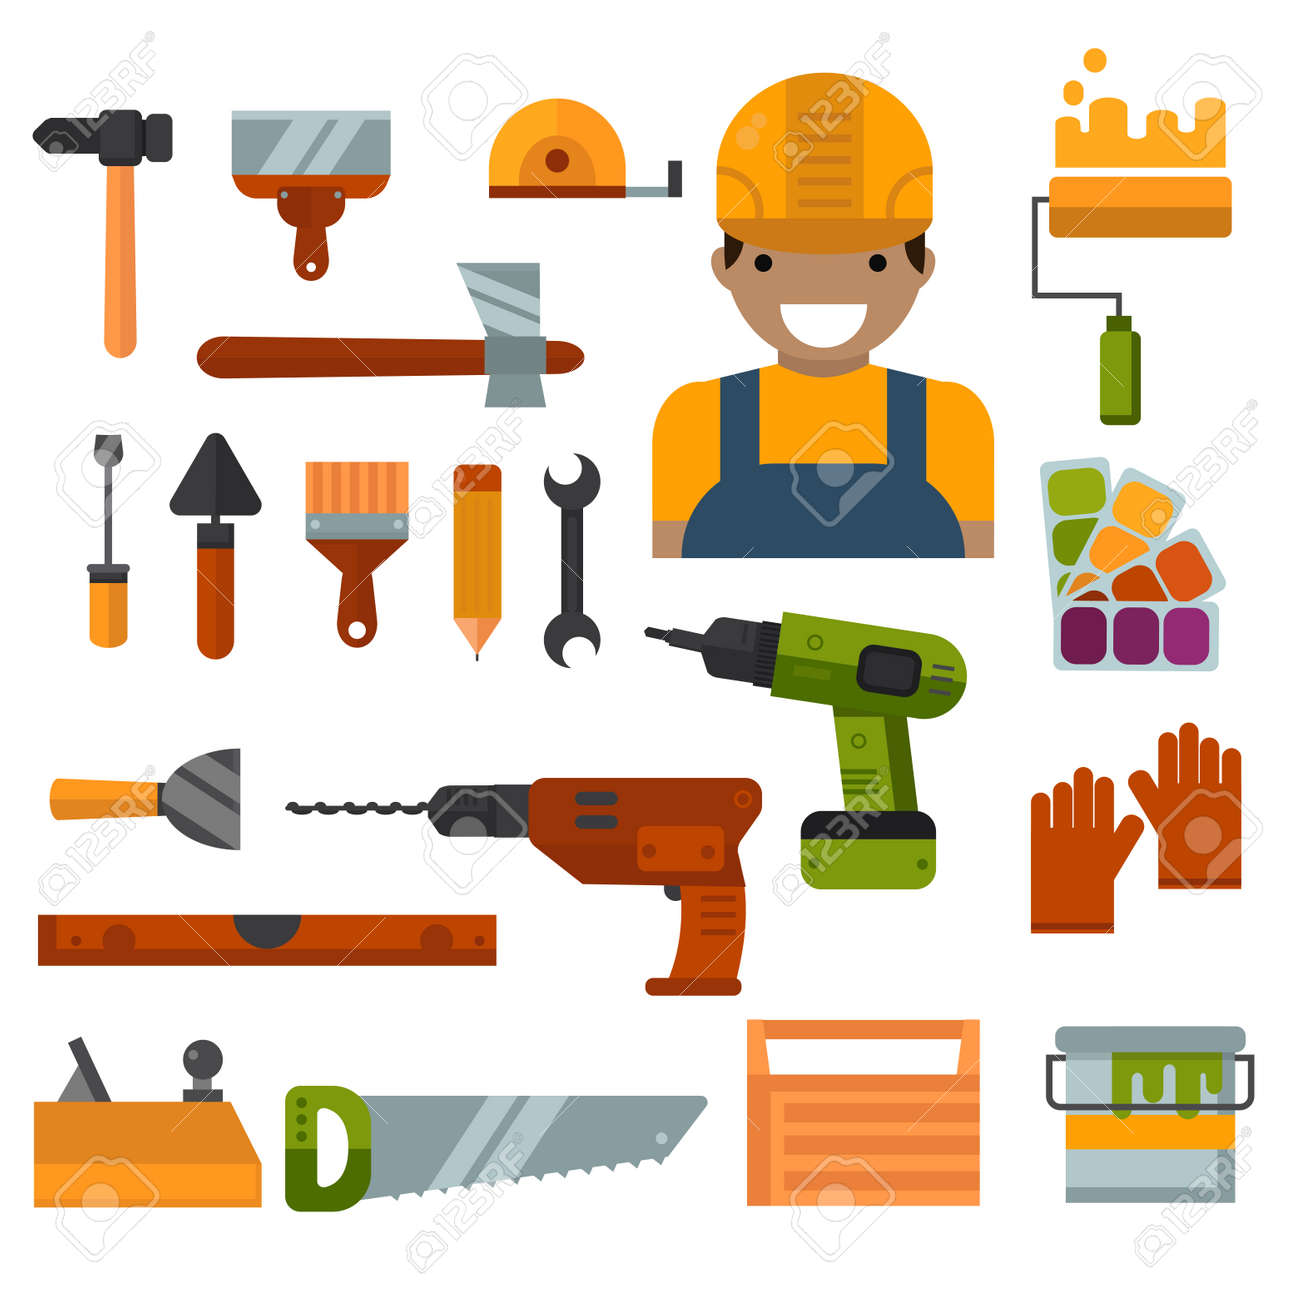 Perfect Set Of Worker Home Repair Tools Flat Icons. House Tool Industry. Building,  Home